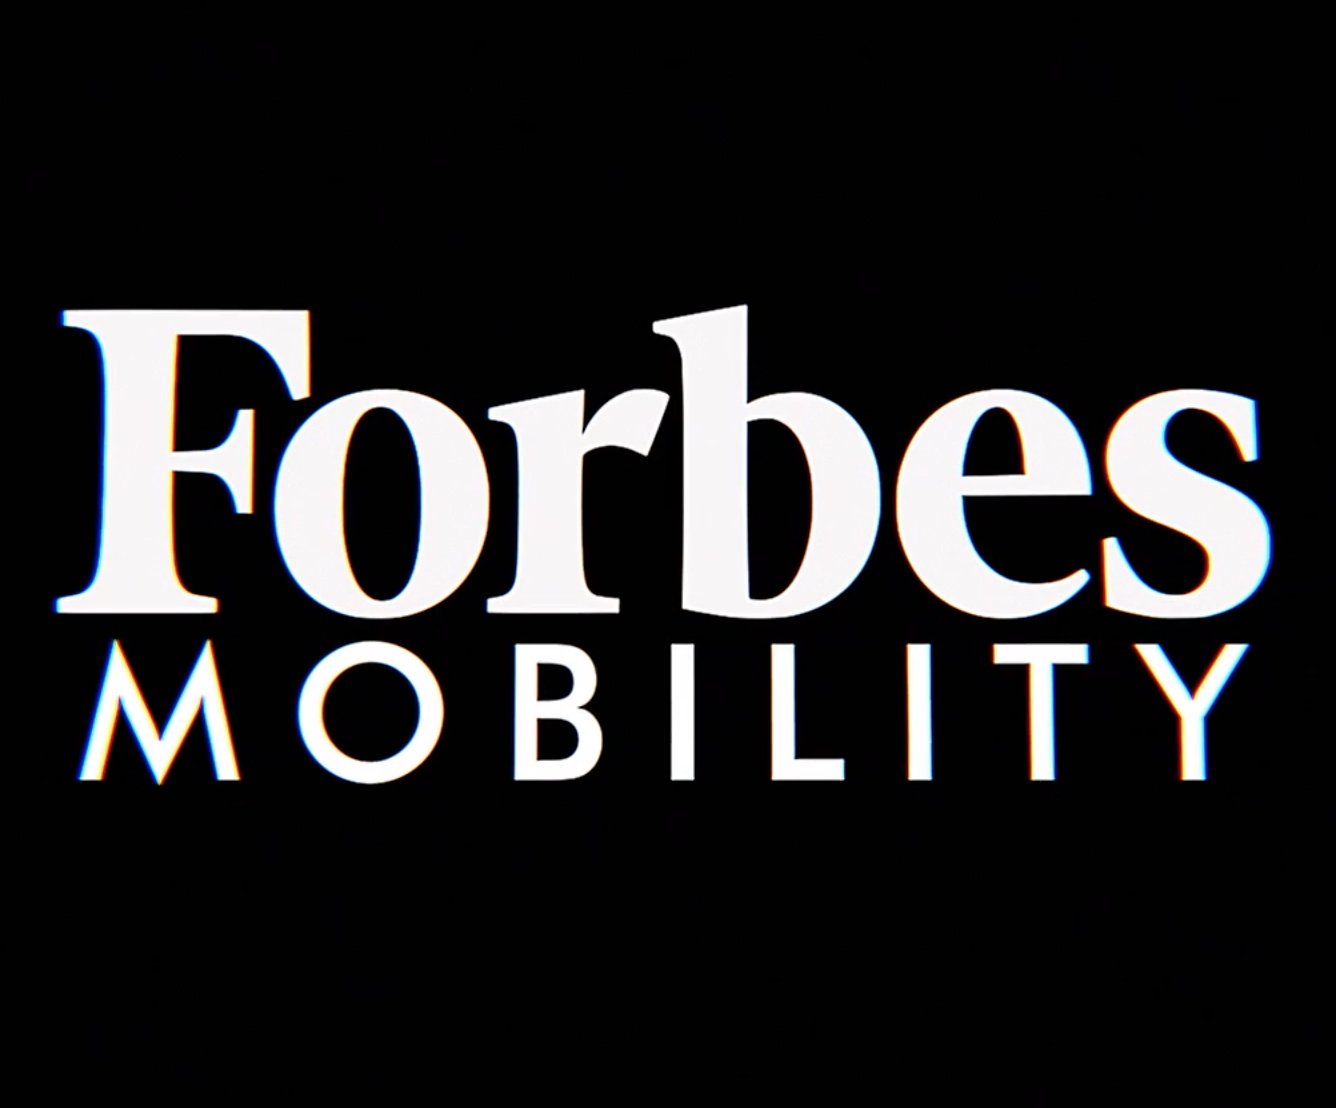 Forbes Mobility